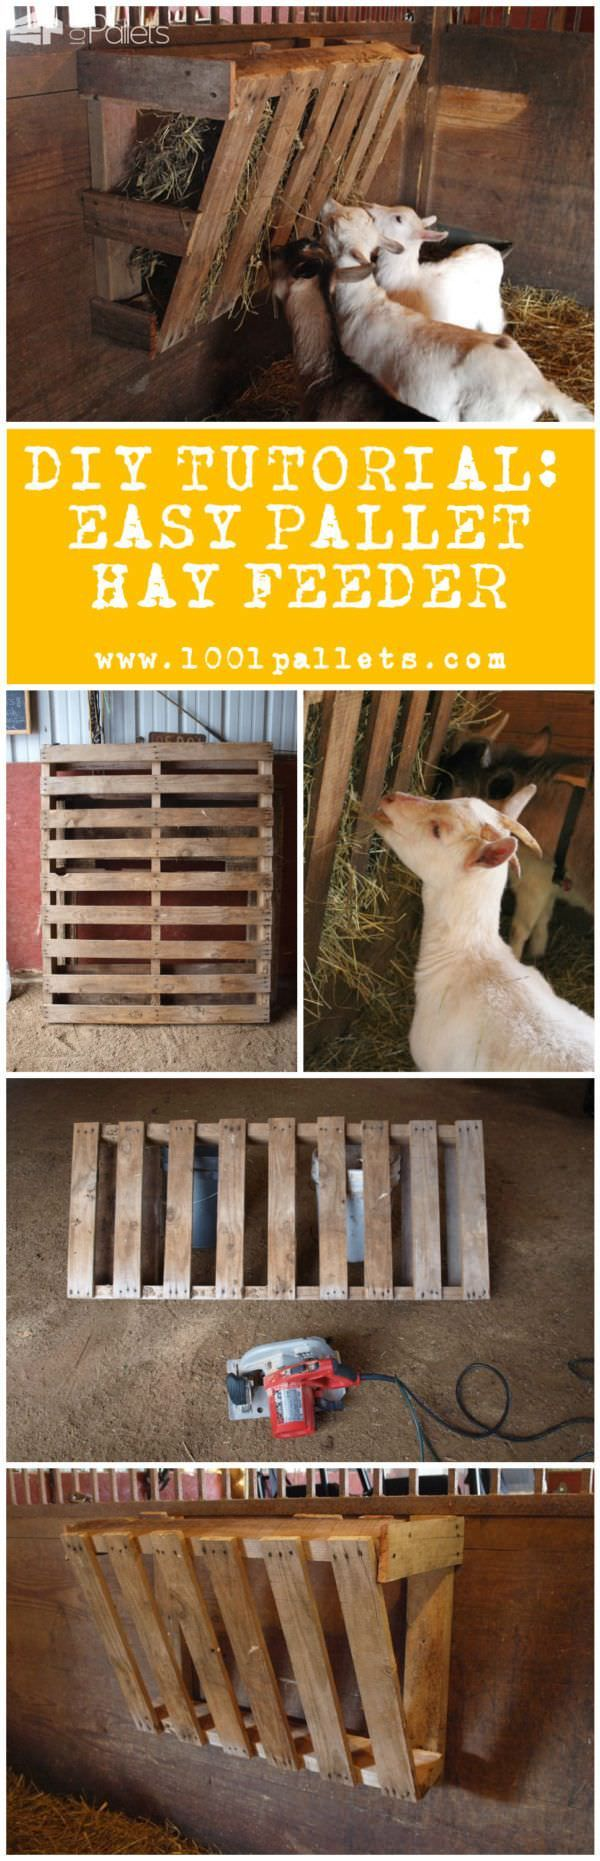 "Diy Tutorial: Easy Pallet Hay Feeder Elizabeth Ohiothoughts from the blog ""Ohiothoughts"" in collaboration with 1001Pallets will describe how to make an easy pallet hay feeder with one single repurposed wooden pallet and a price that will beat any commercial hay feeder. 1 Pallets. 2 Hours. We evaluated this project as an easy difficulty project. Available as a PDF File. To download this..."